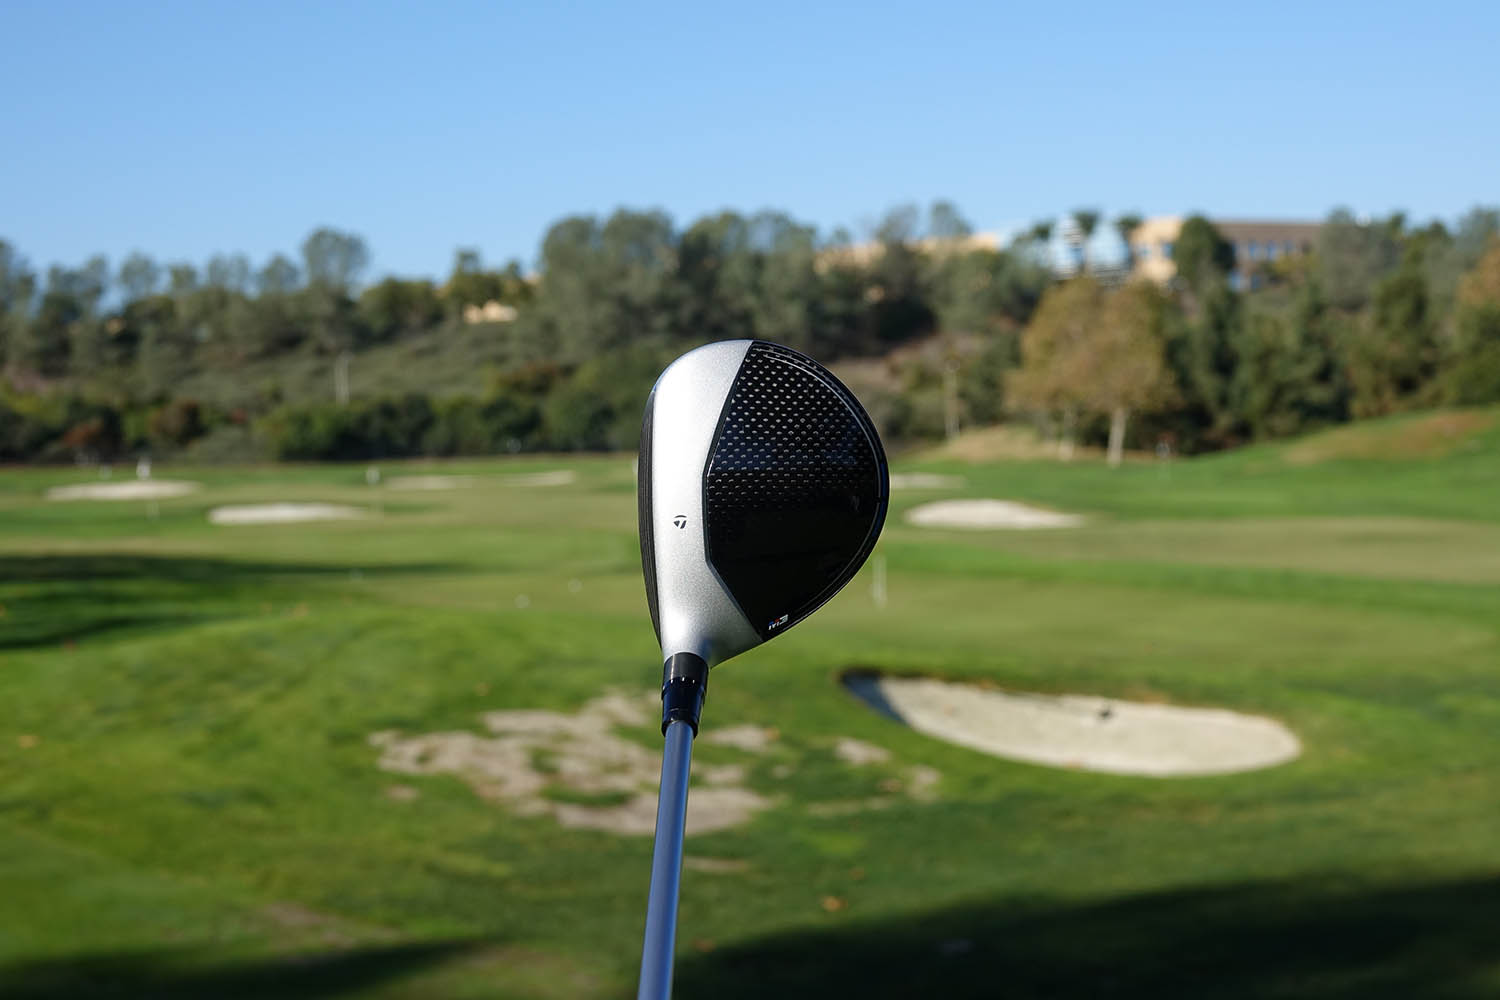 REVIEW: TaylorMade M3 and M4 driver & woods - The GOLFTEC